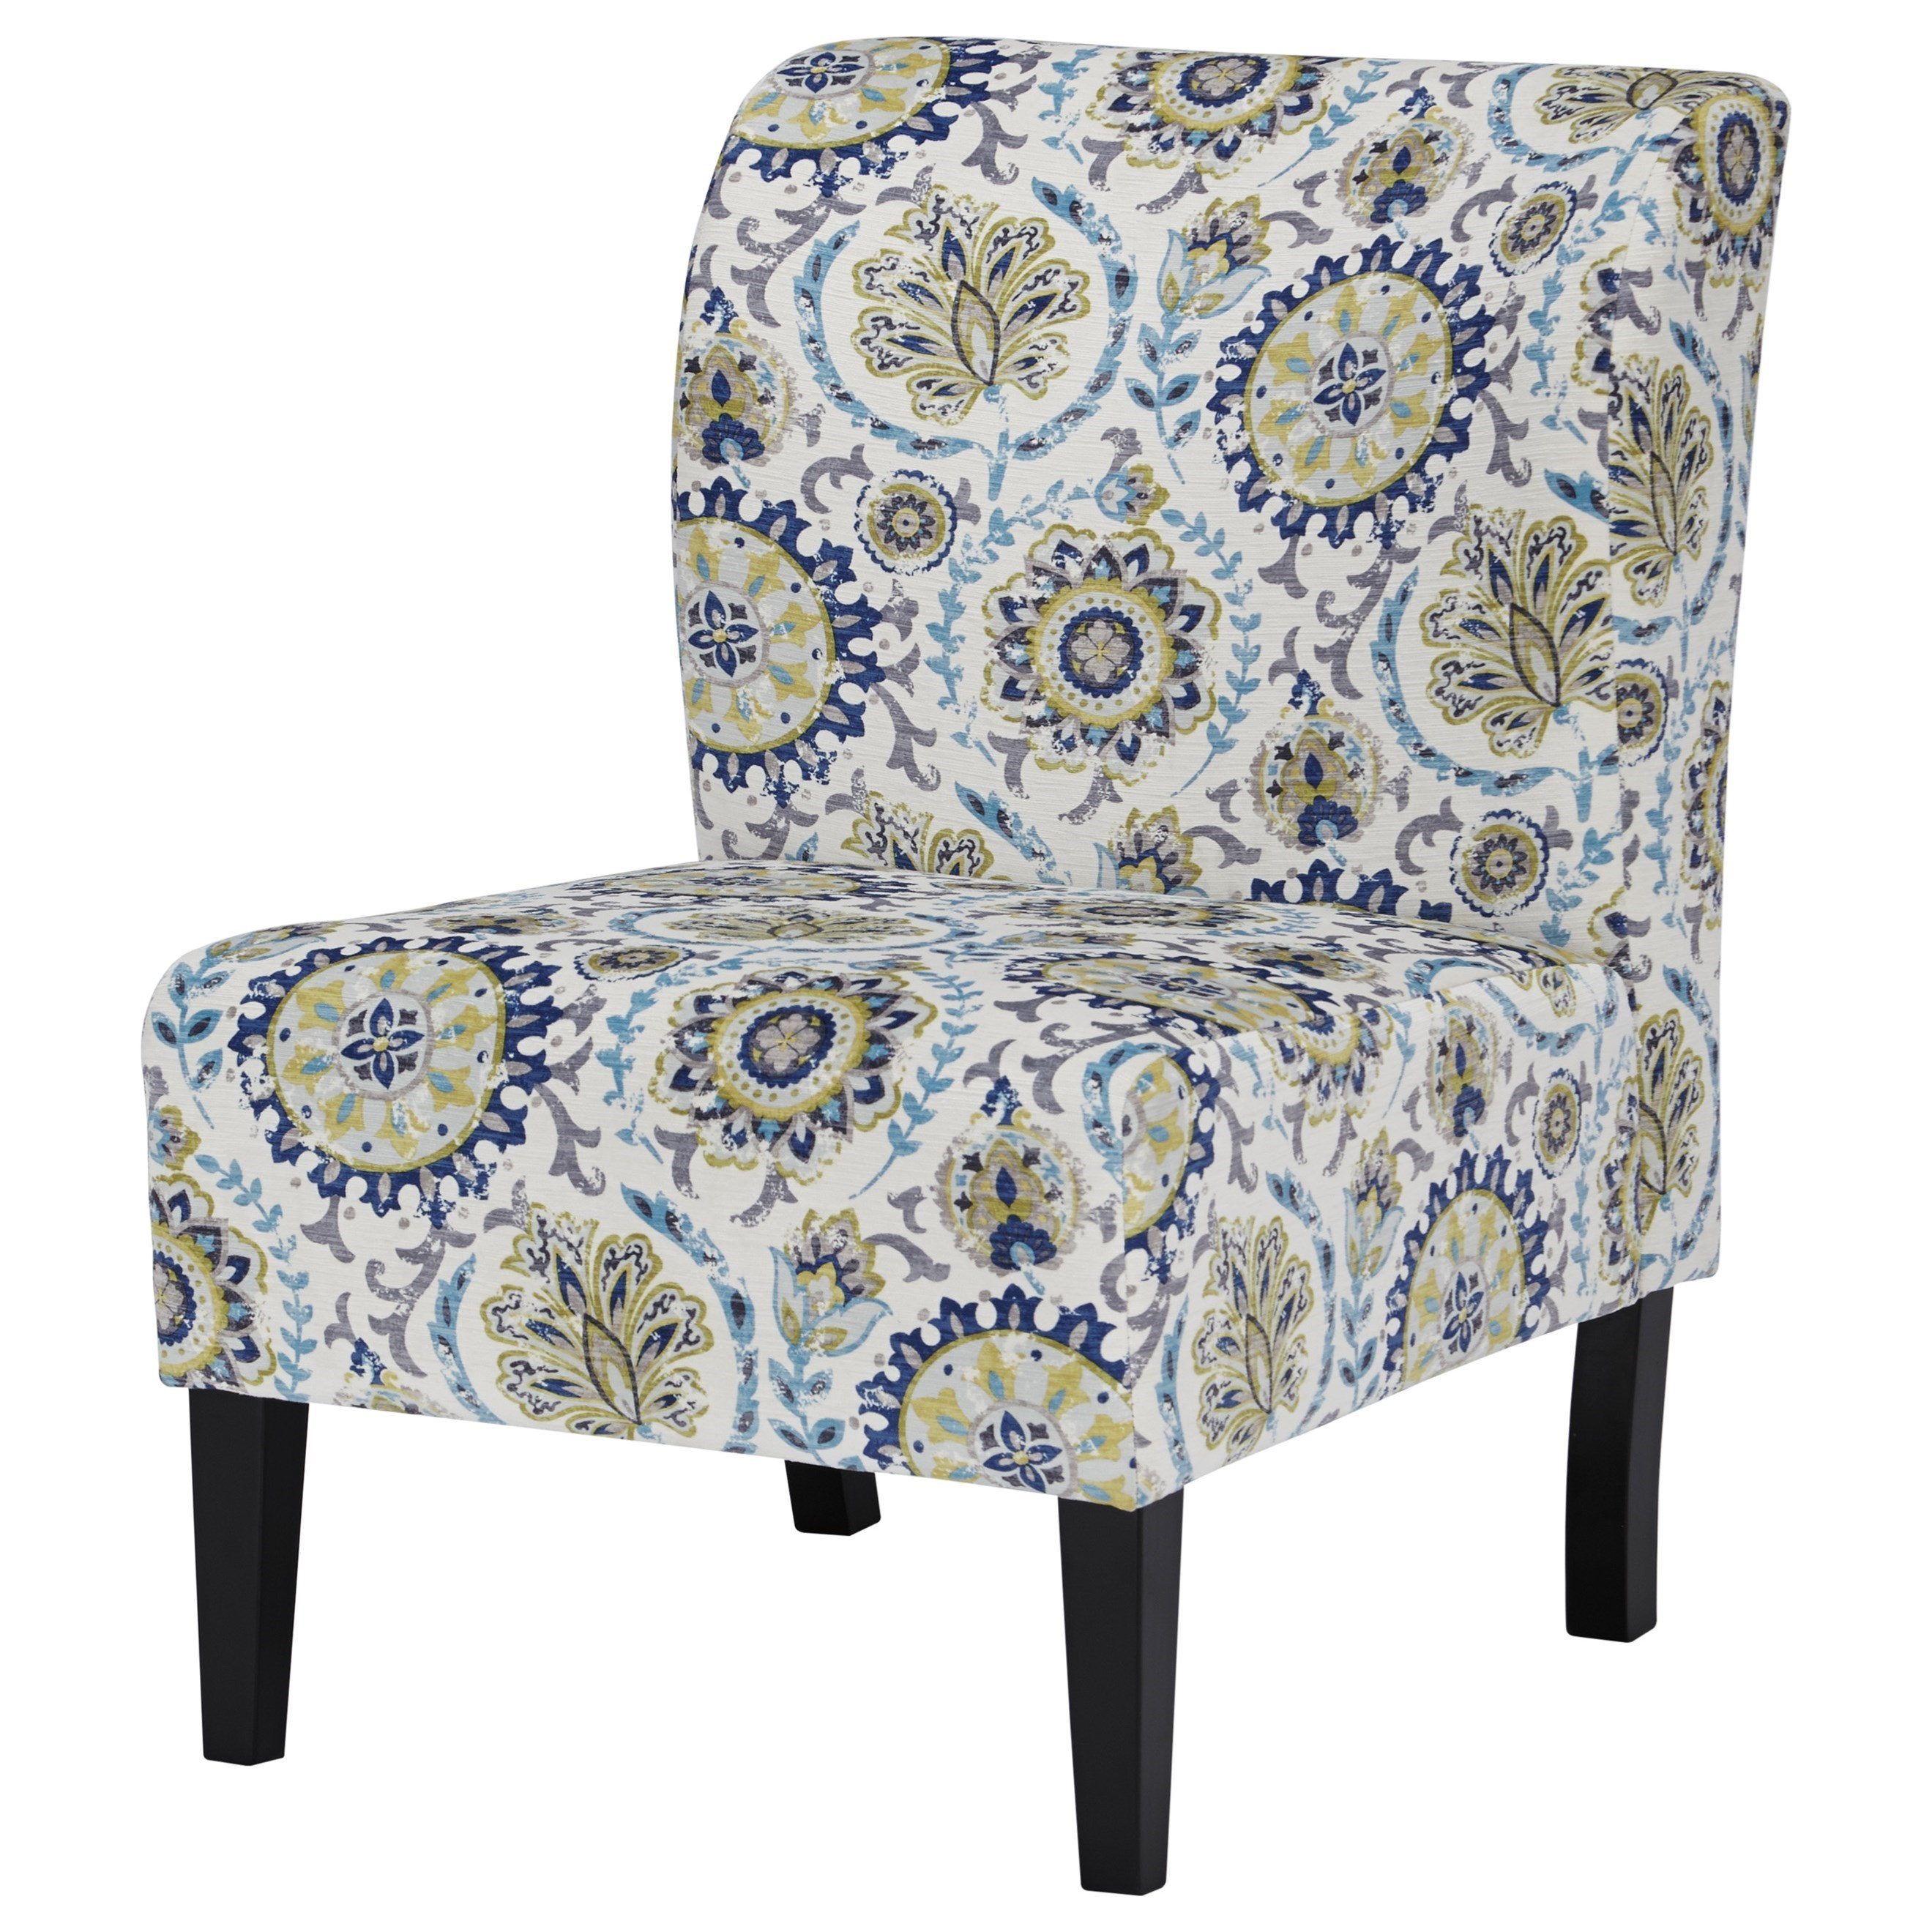 Signature Design by Ashley Triptis Accent Chair - Item Number: A3000068